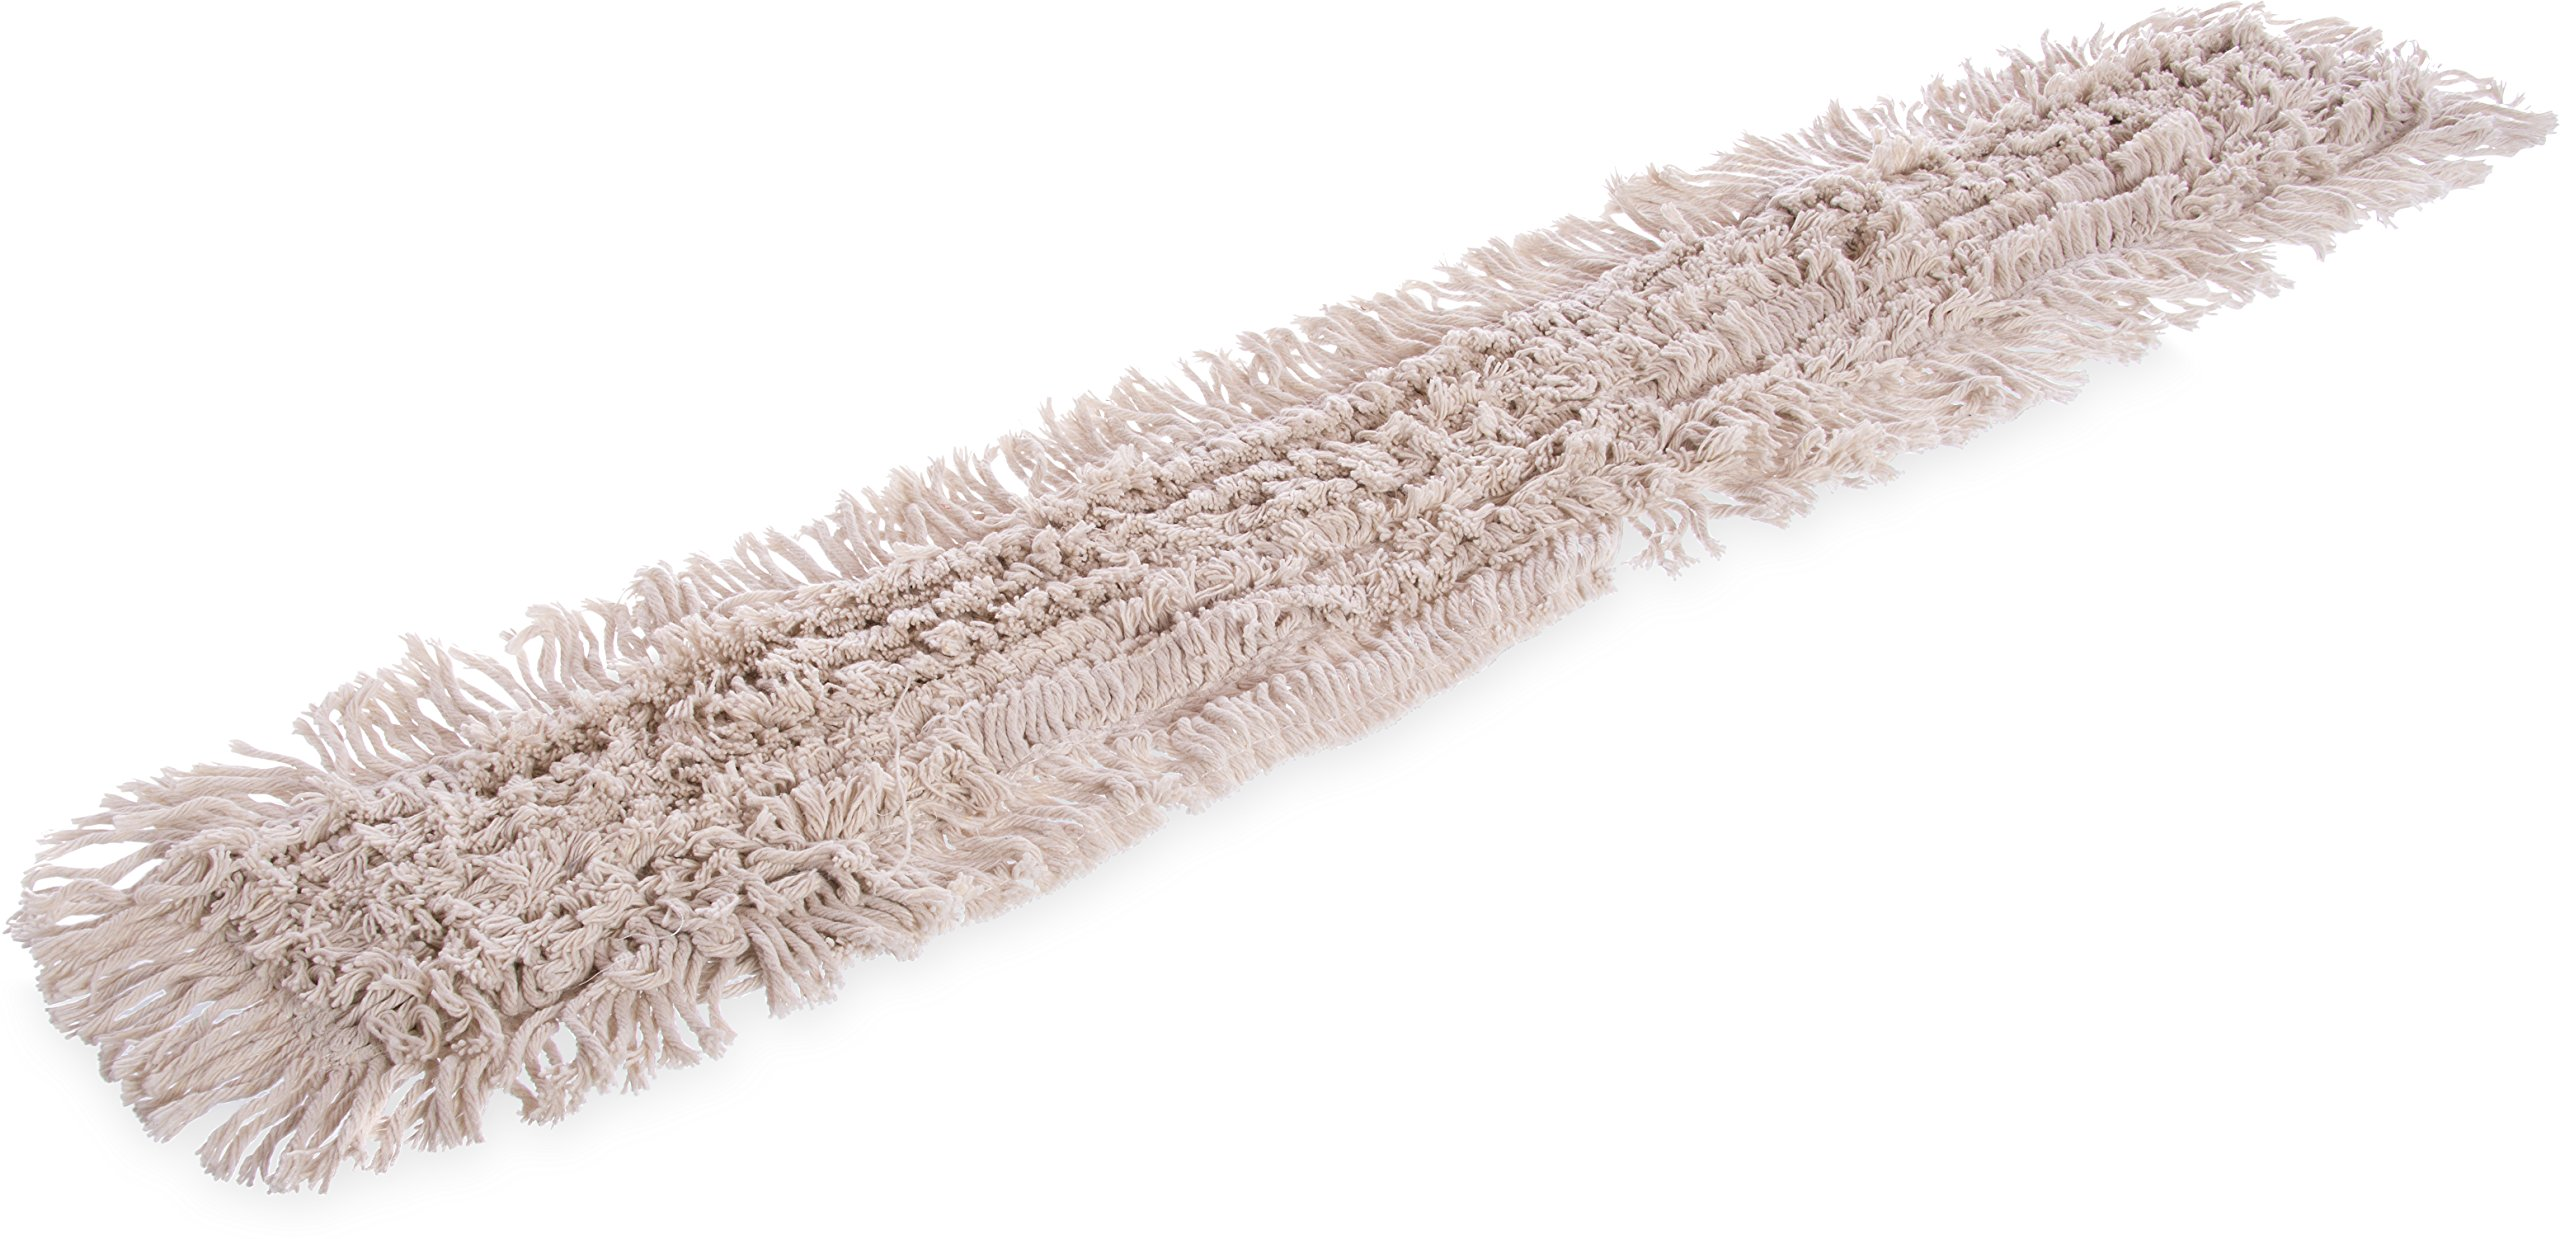 Carlisle 364754800 Flo-Pac Cotton Tie Back Dust Mop, 48'' Length x 5'' Width (Pack of 12) by Carlisle (Image #1)